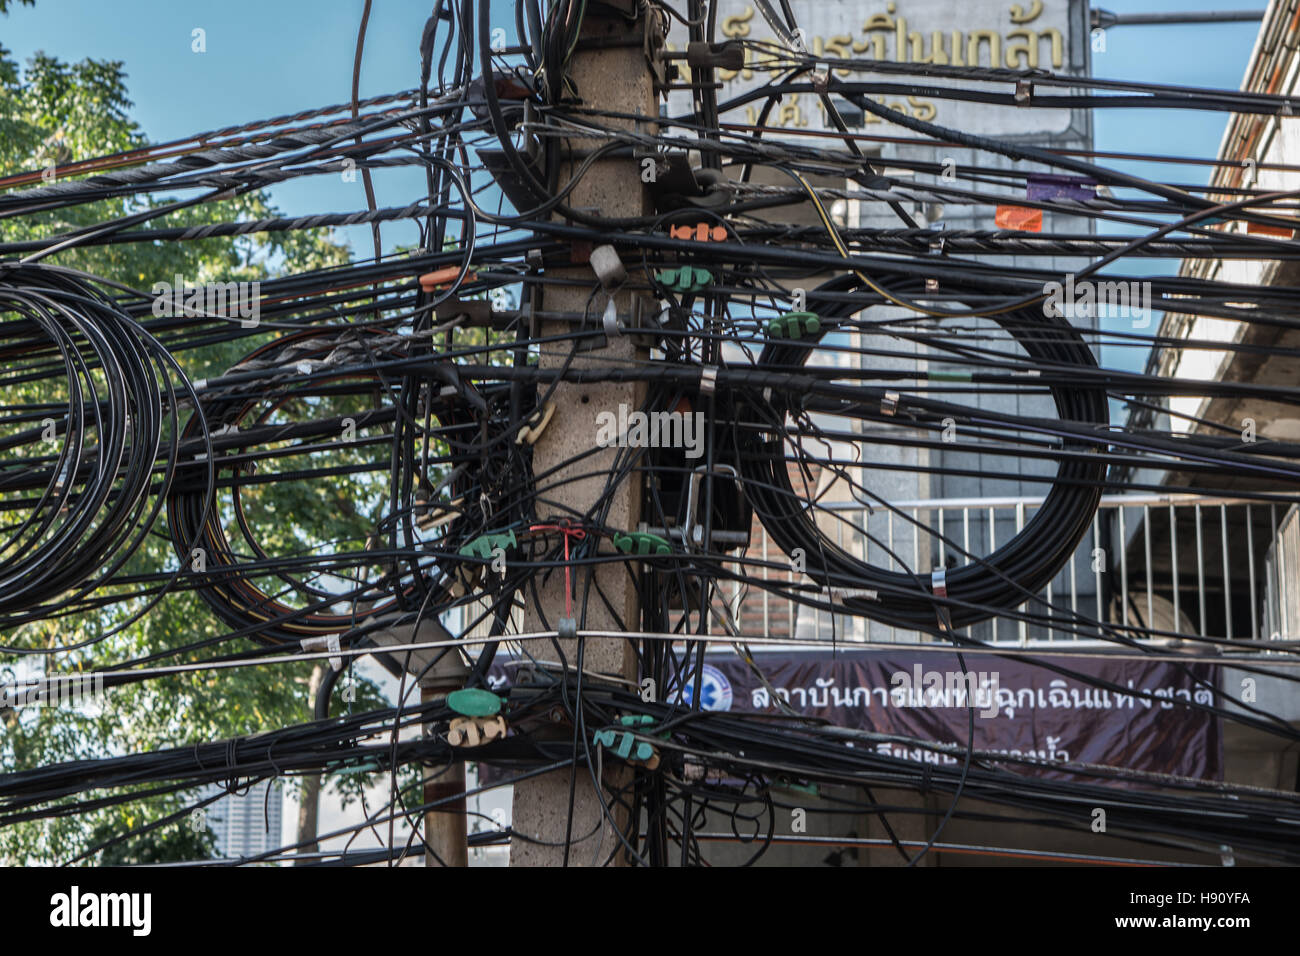 City Electrical Wiring Product Diagrams Diagram Tangled And Messy Cables In Bangkok Thailand Stock Rh Alamy Com Of Calgary Homeowner Guide Electric Wilmington